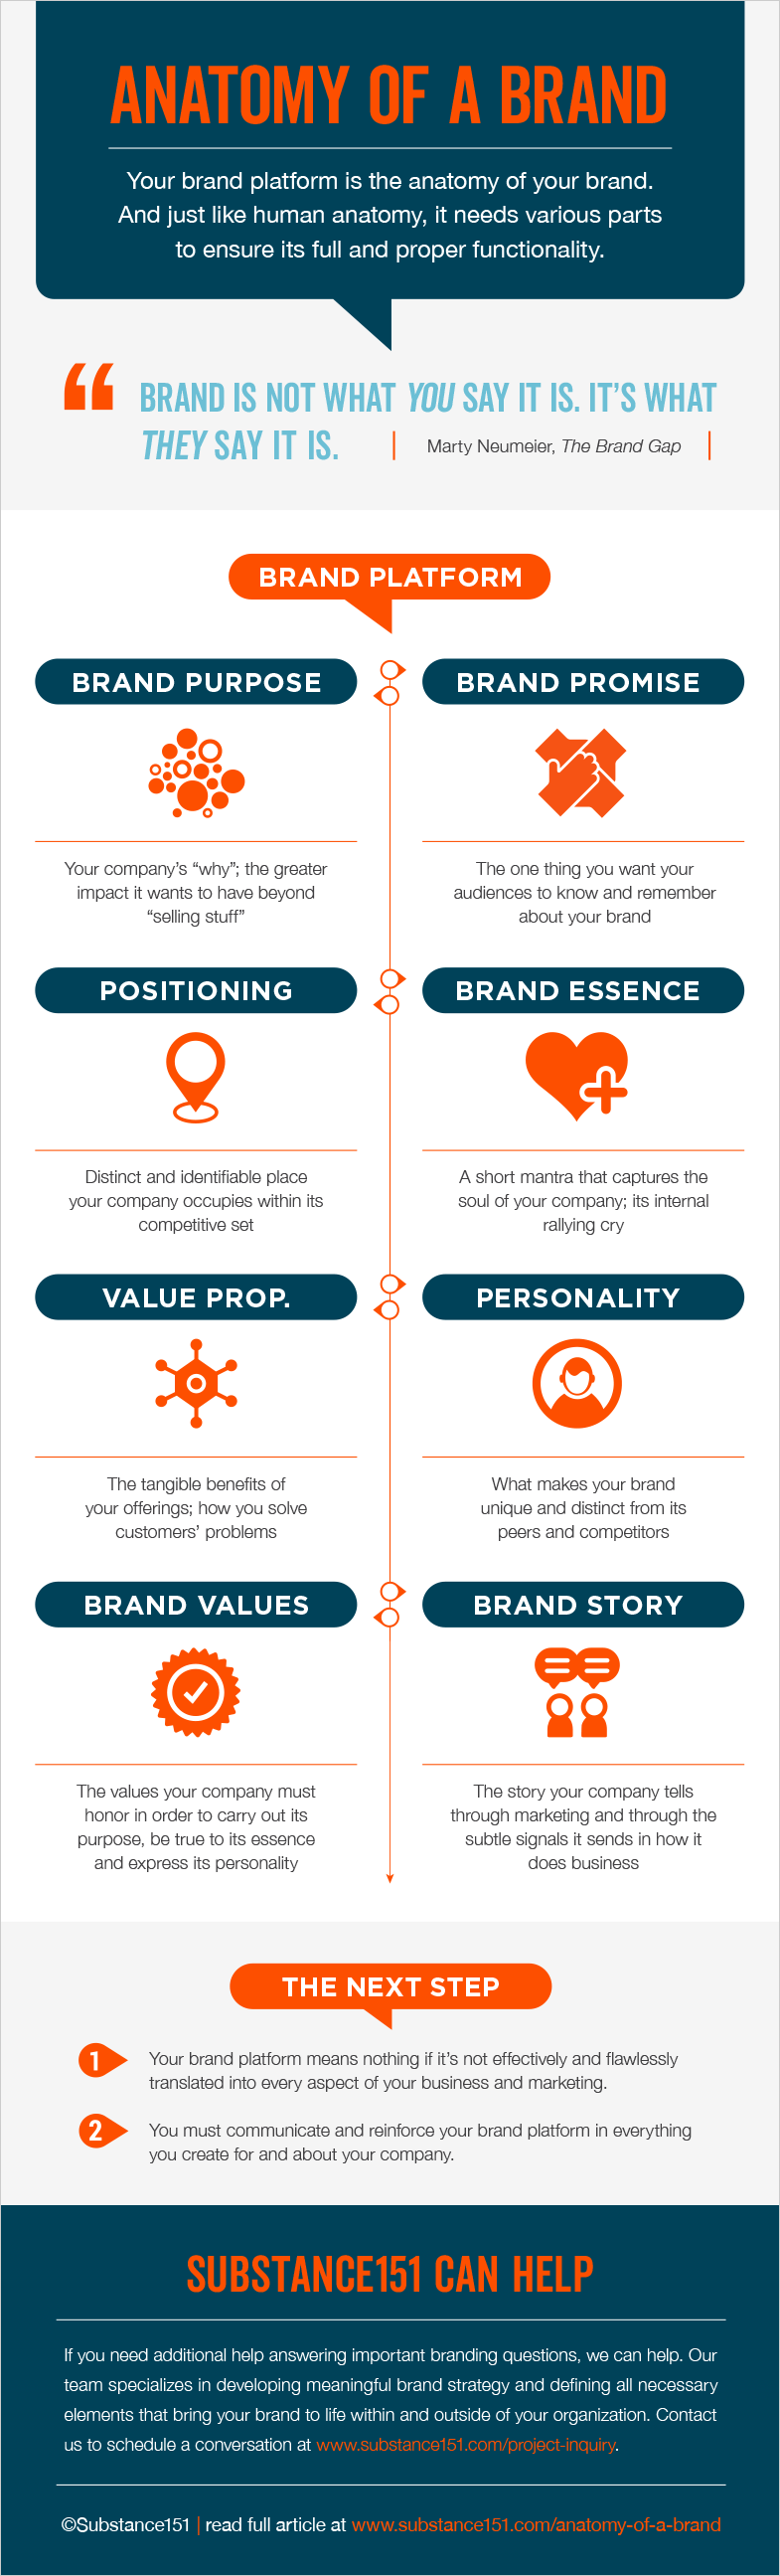 Anatomy of a Brand Infographic